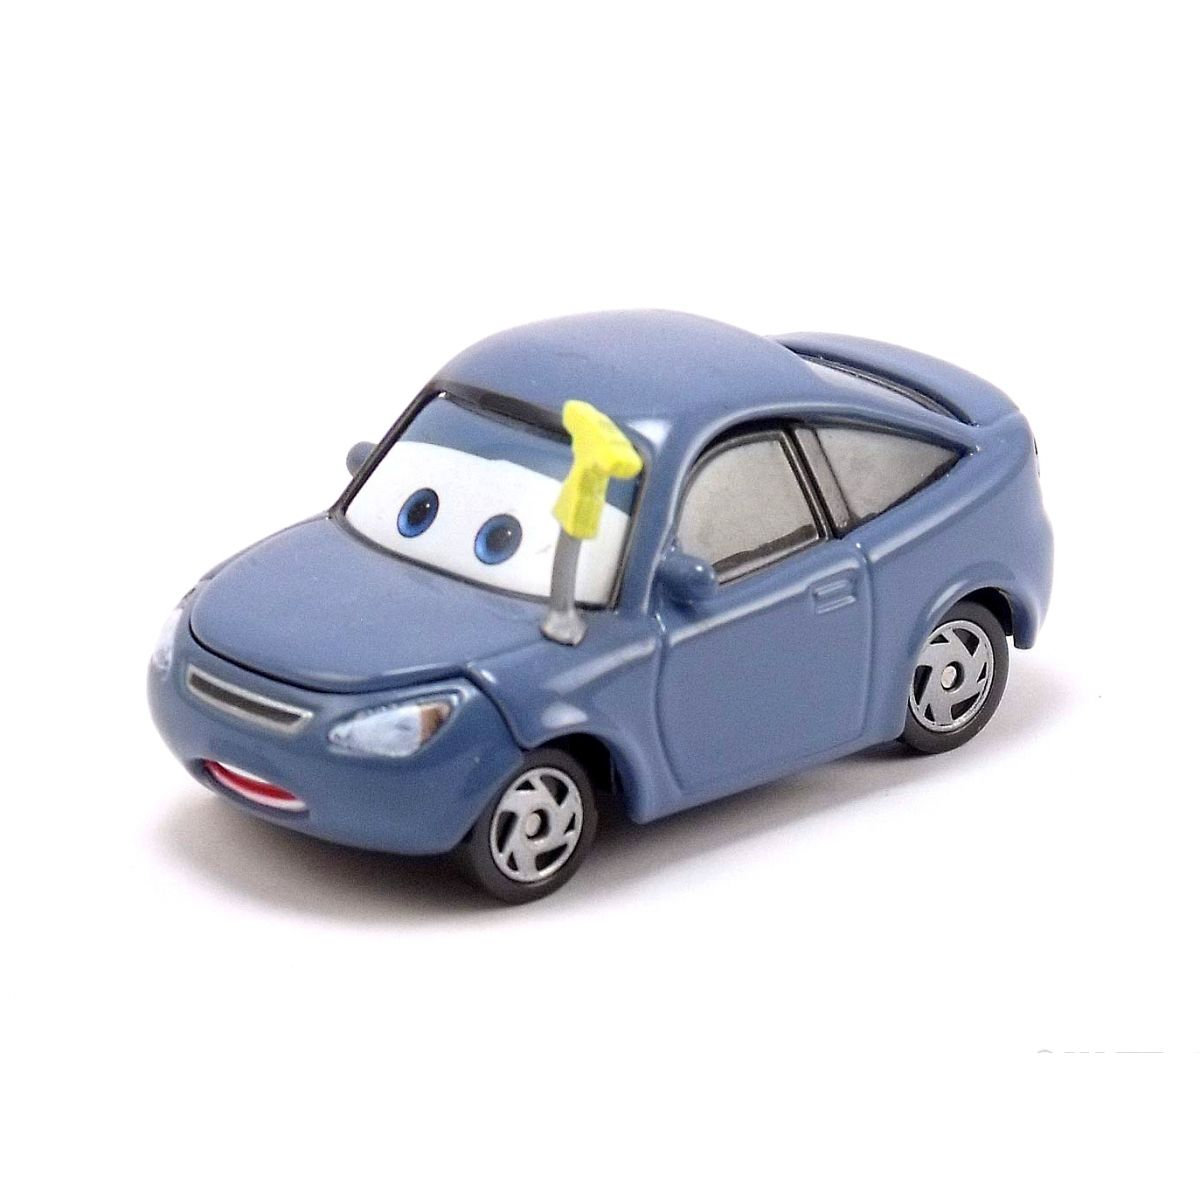 Disney Pixar - Cars - Marty Brakeburst  - Hobby Lobby CollectorStore